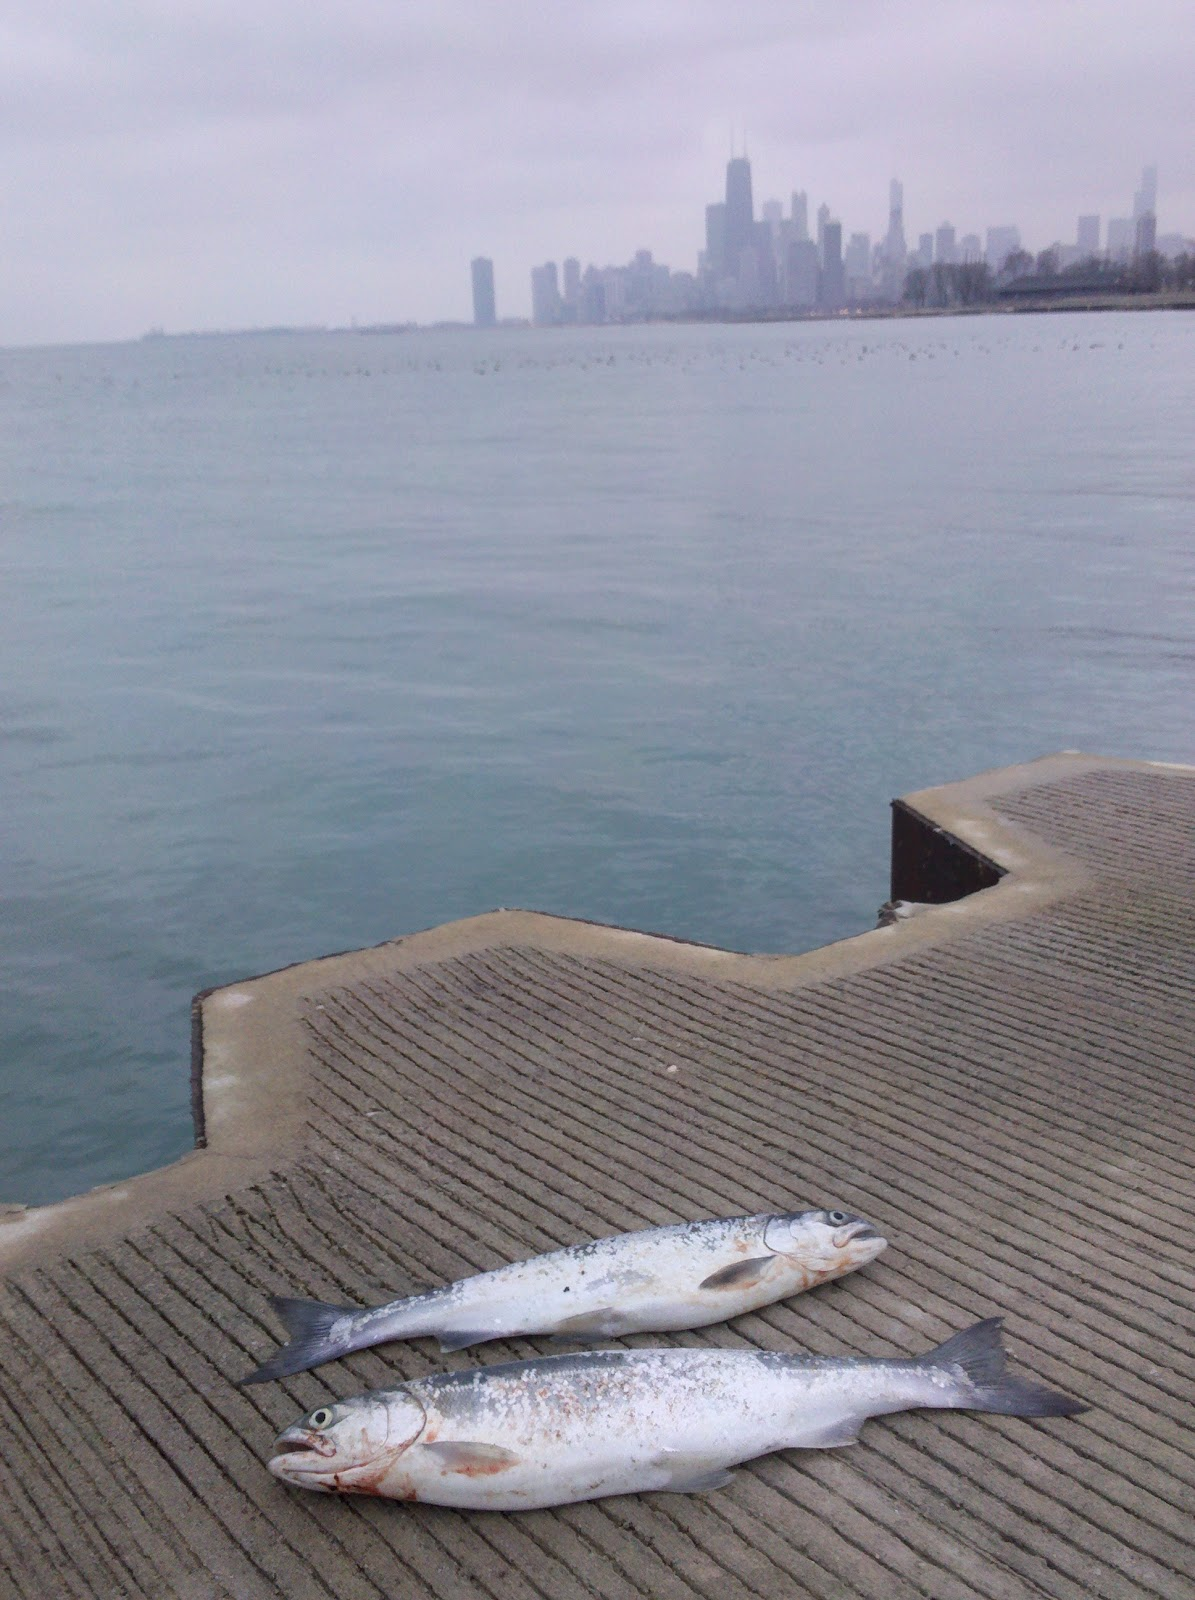 Great lakes angler a look back at the 2012 coho shore for Fishing in chicago